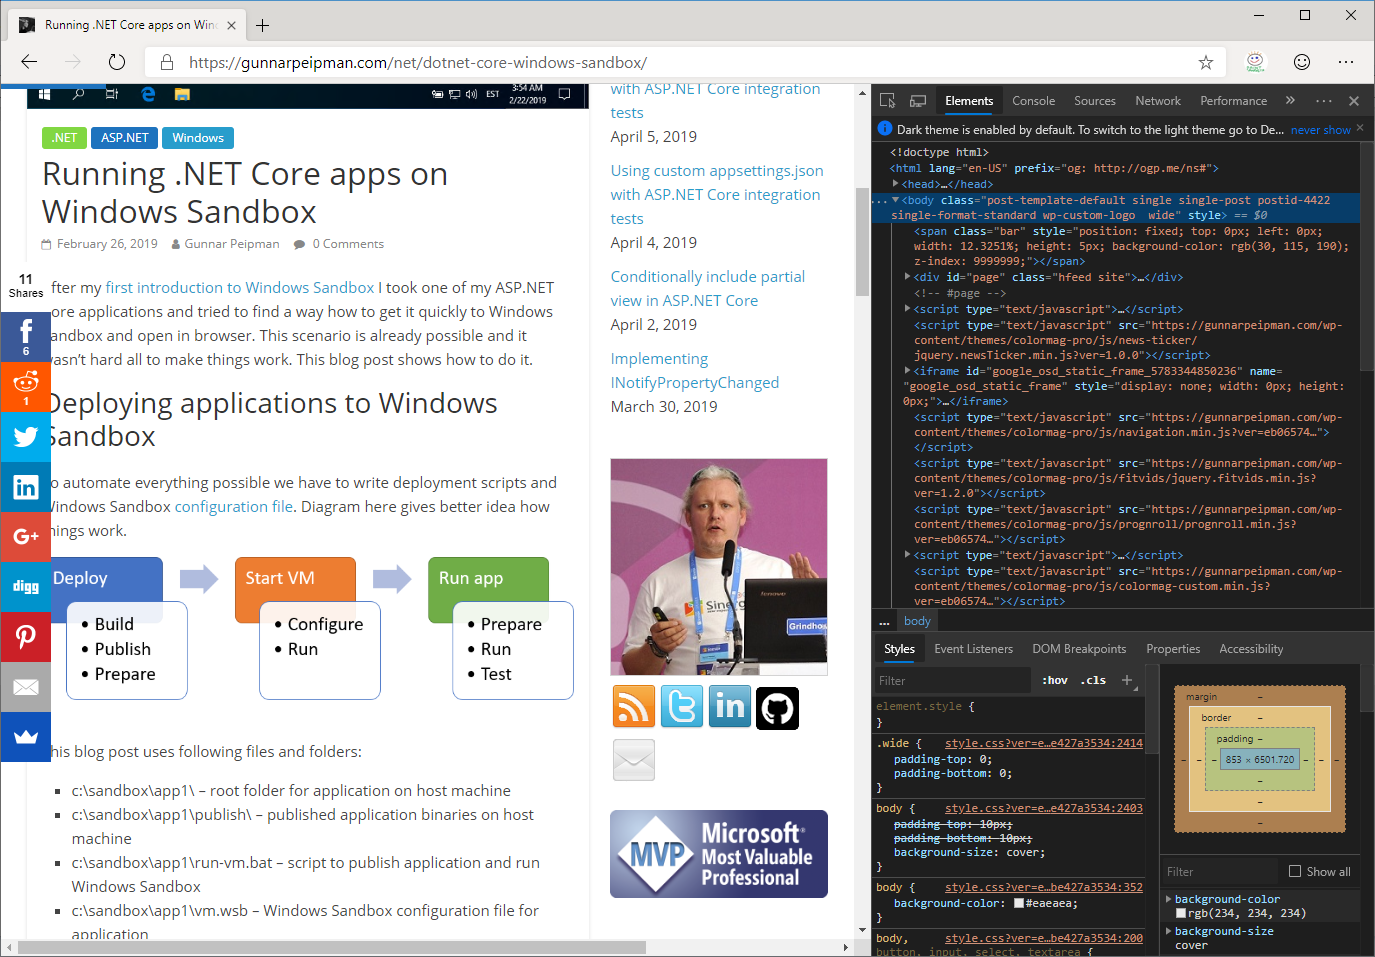 Edge Insider: Developer Tools